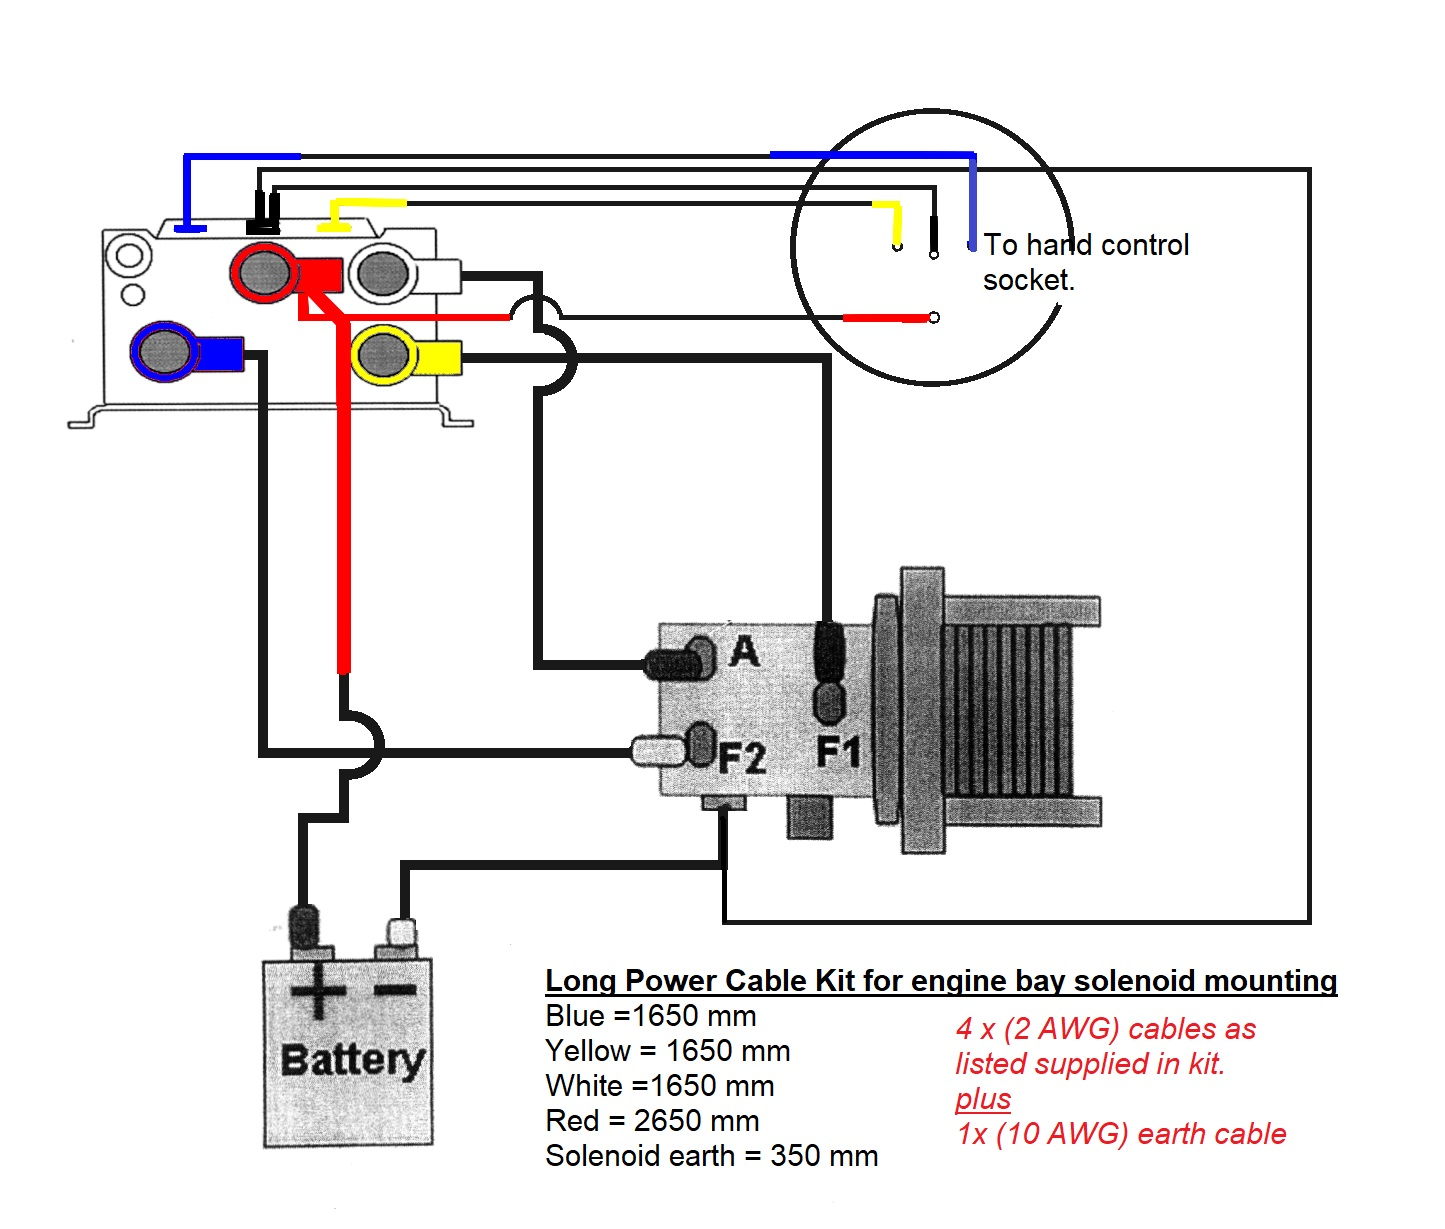 Viking Winch Solenoid Wiring Diagram | Wiring Diagram on winch switch diagram, door lock diagram, alternator diagram, winch solenoid diagram, winch relay, electrical diagram, rear end diagram, windshield diagram, ball joints diagram, steering column diagram, remote start diagram, coolant diagram, winch cable, circuit diagram, kanban process flow diagram, badland winch wire diagram, parts diagram, winch assembly diagram, winch tractor, batteries diagram,